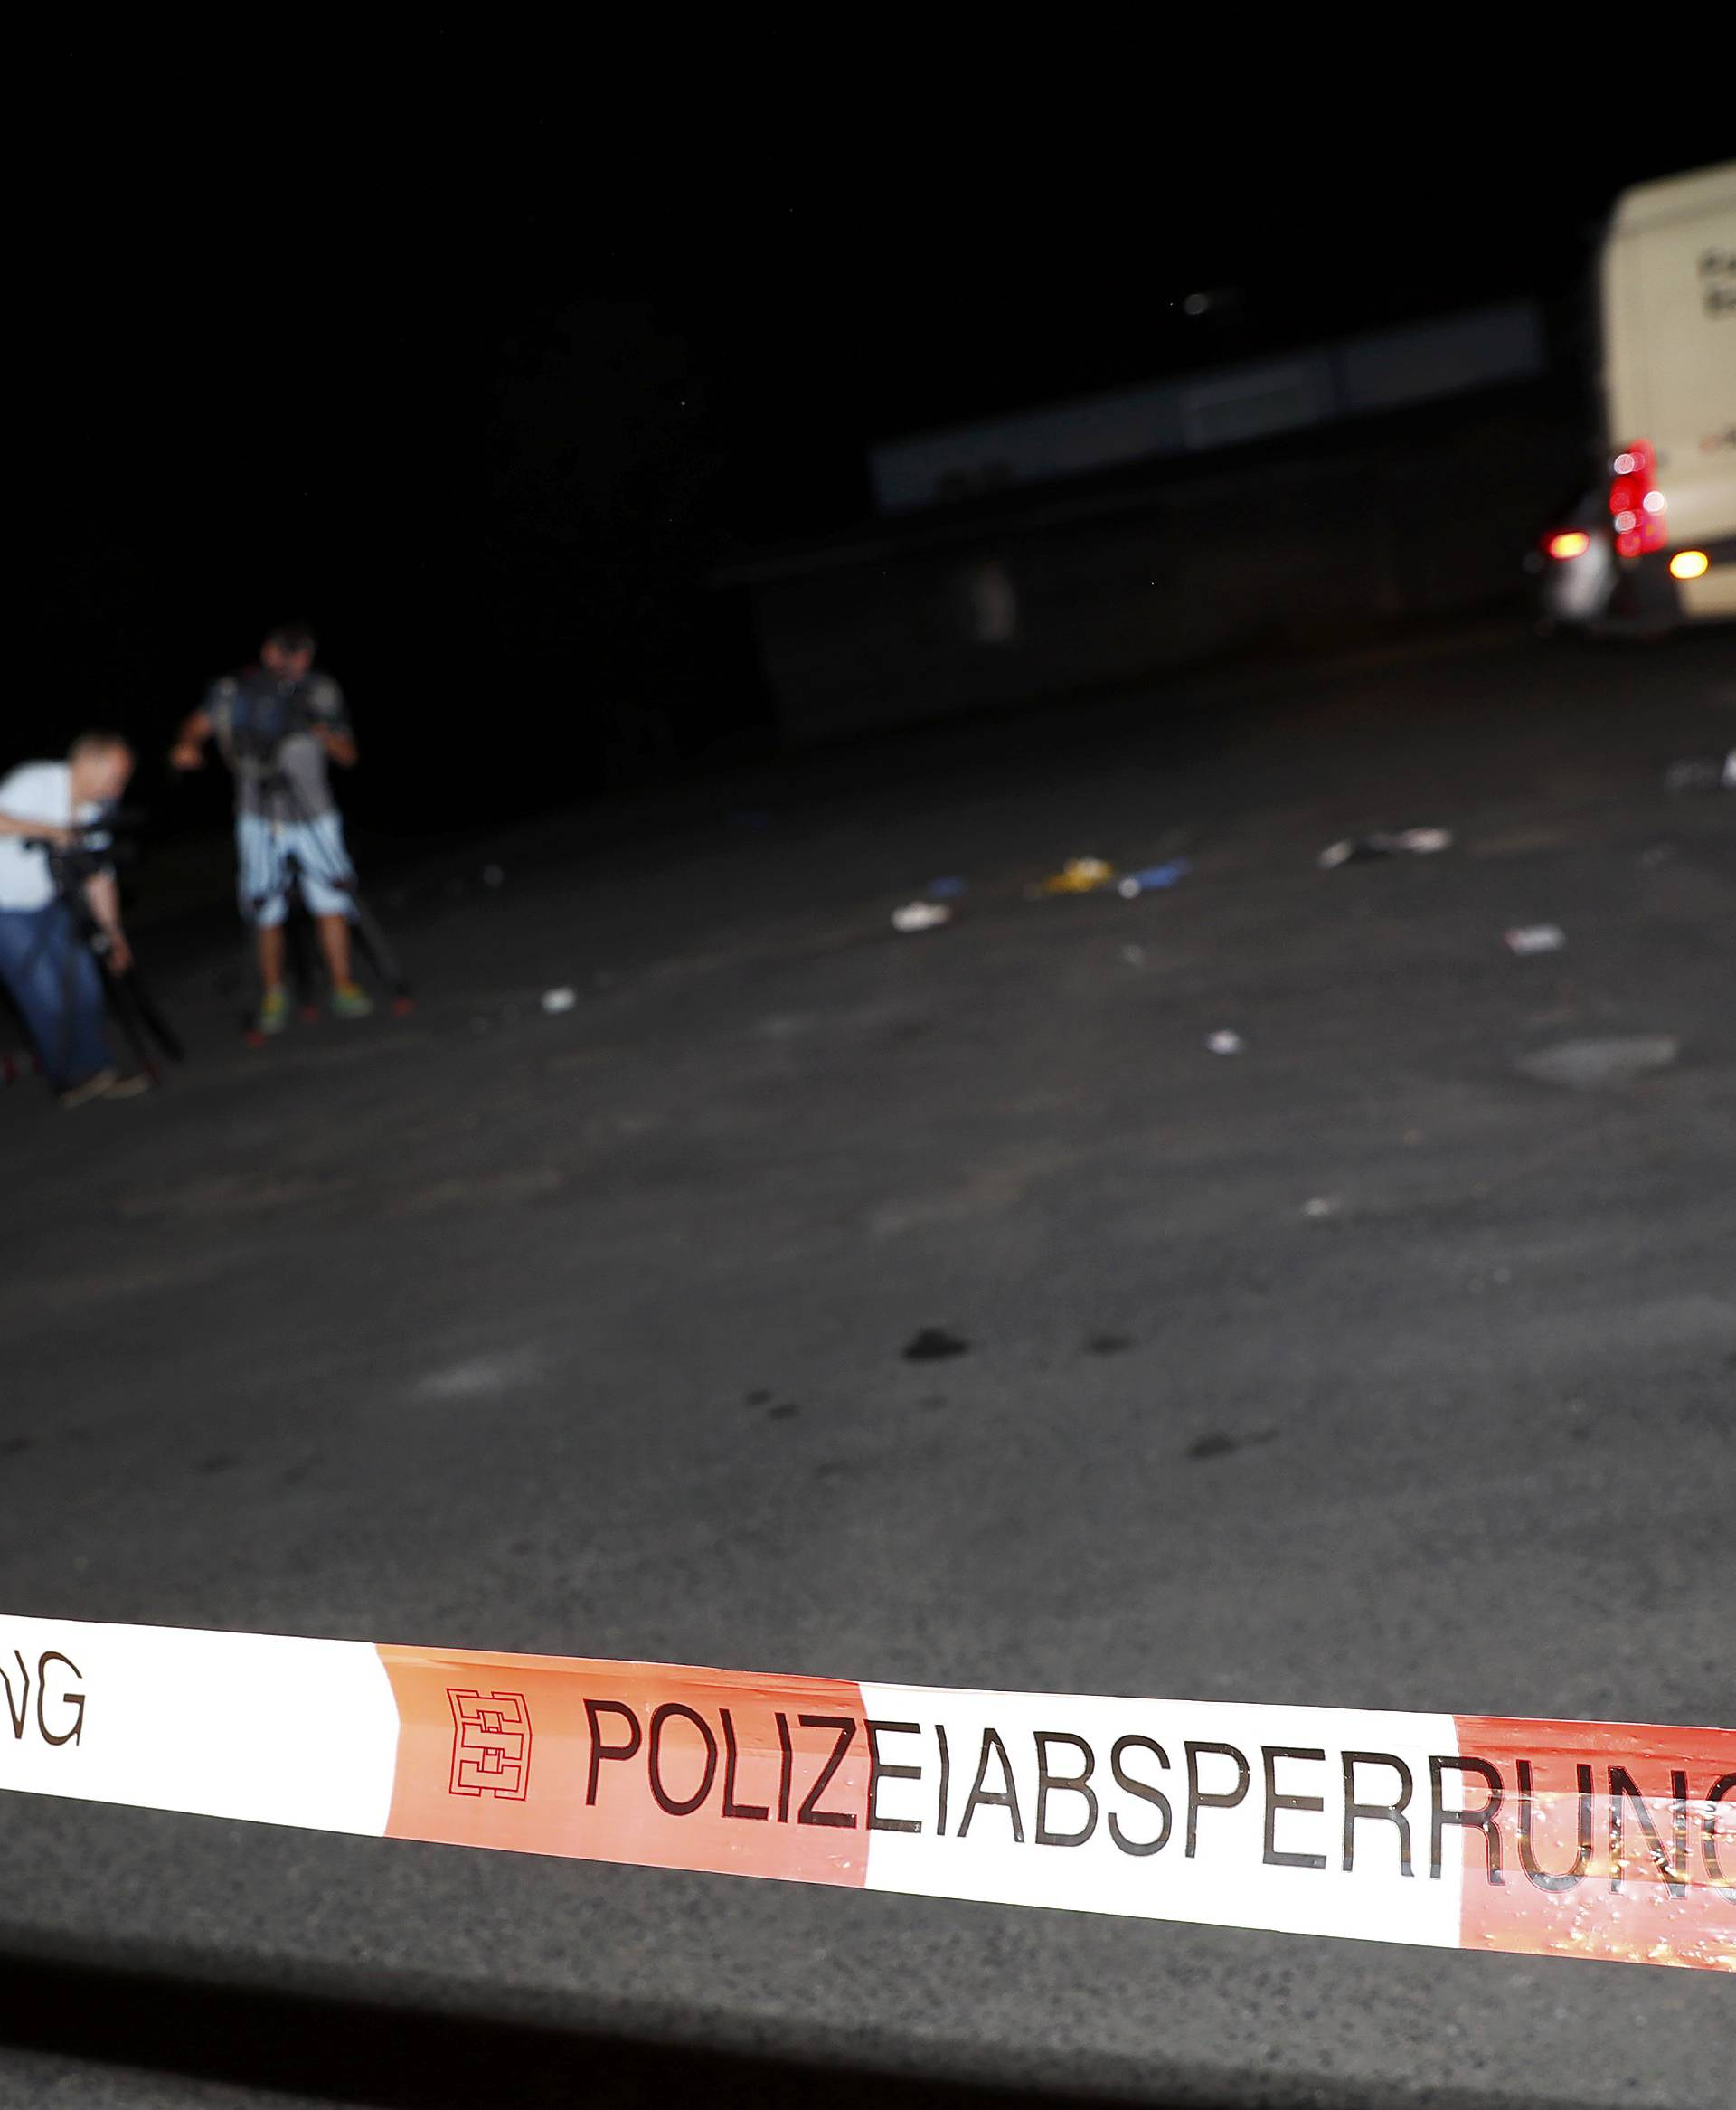 Cameramen film at the scene where a man was shot dead by the police after attacking passengers on a train with an axe near the city of Wuerzburg